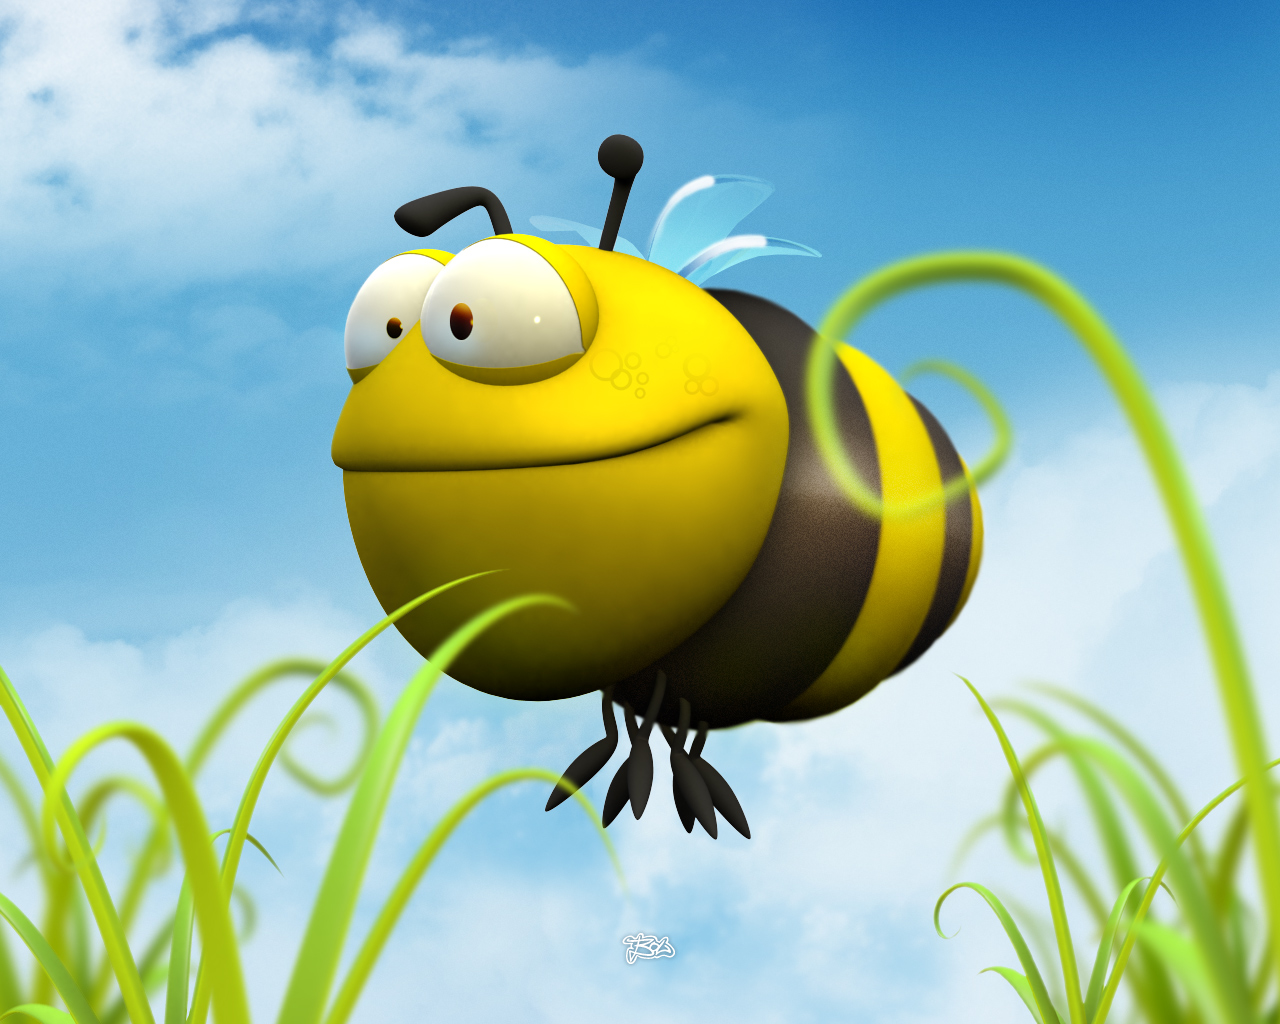 Funny 3D Bumble Bee wallpaper 1280x1024